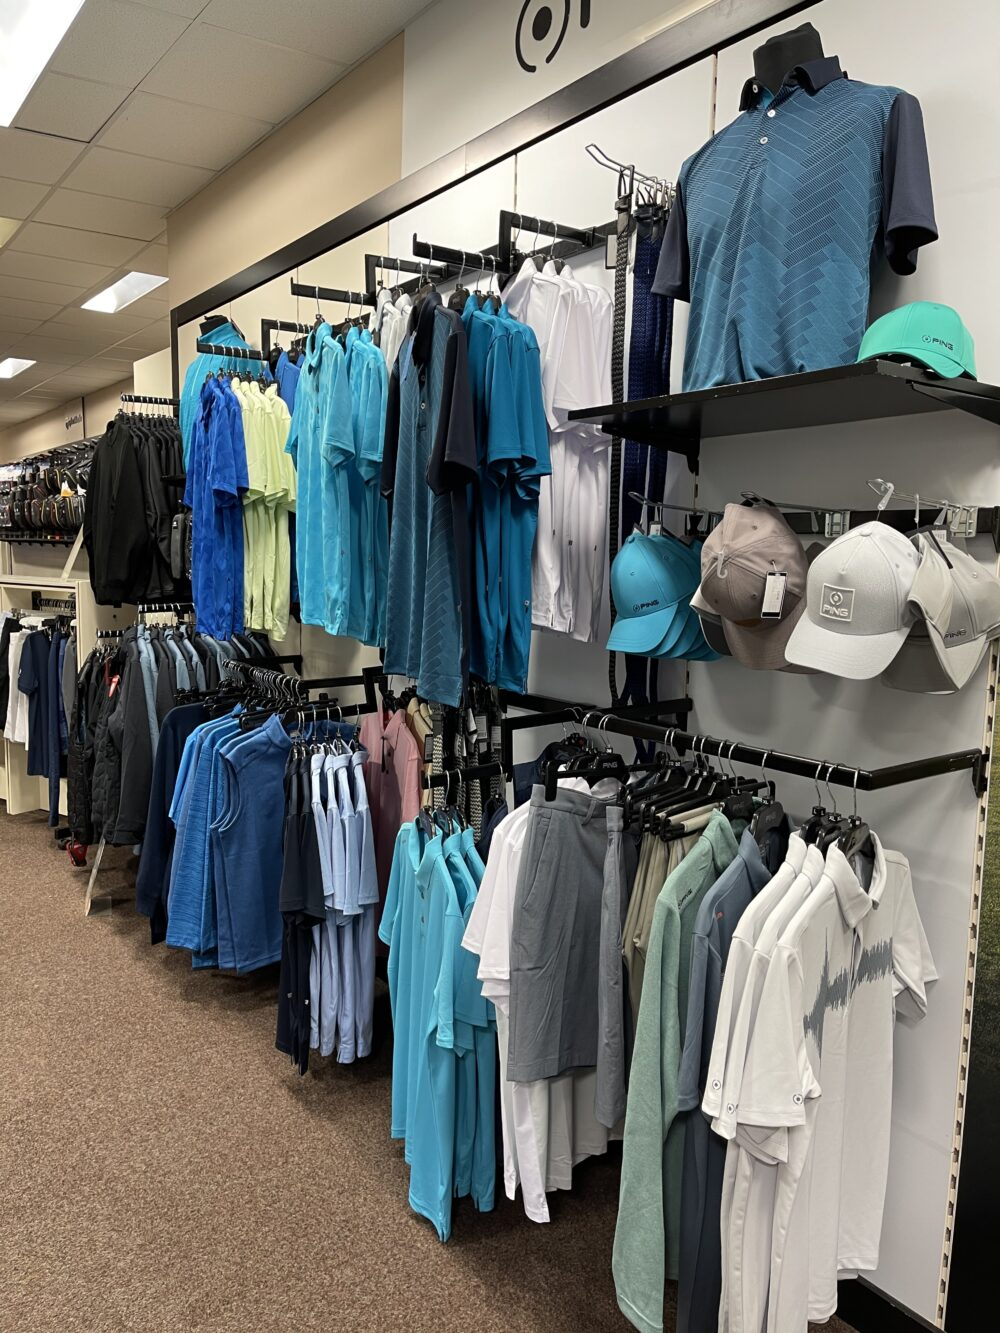 Ping golf clothing apparel at peter field golf shop norwich norfolk